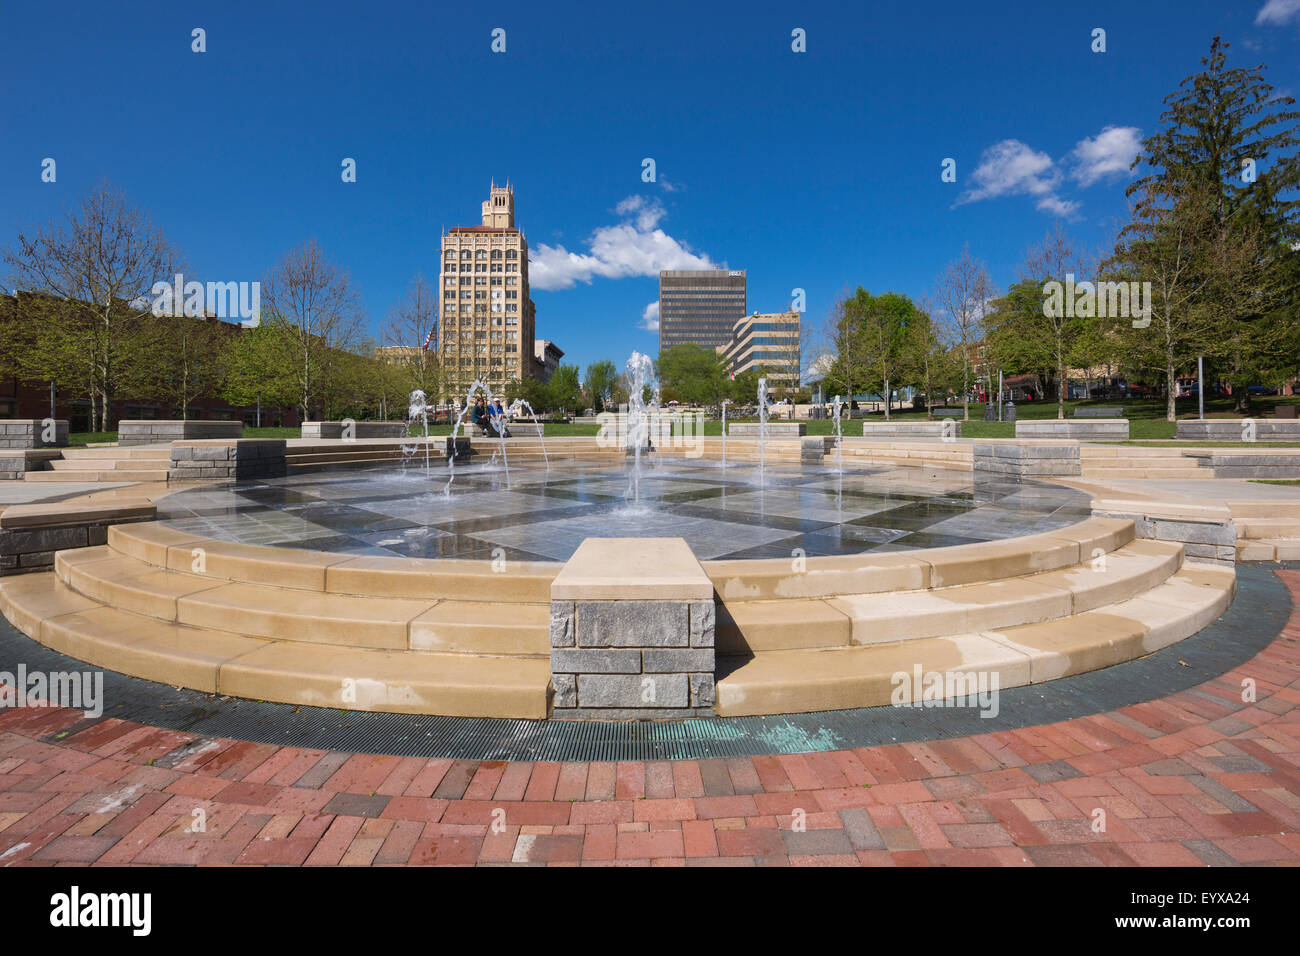 FOUNTAIN PACK SQUARE PARK DOWNTOWN ASHEVILLE BUNCOMBE COUNTY NORTH CAROLINA USA - Stock Image